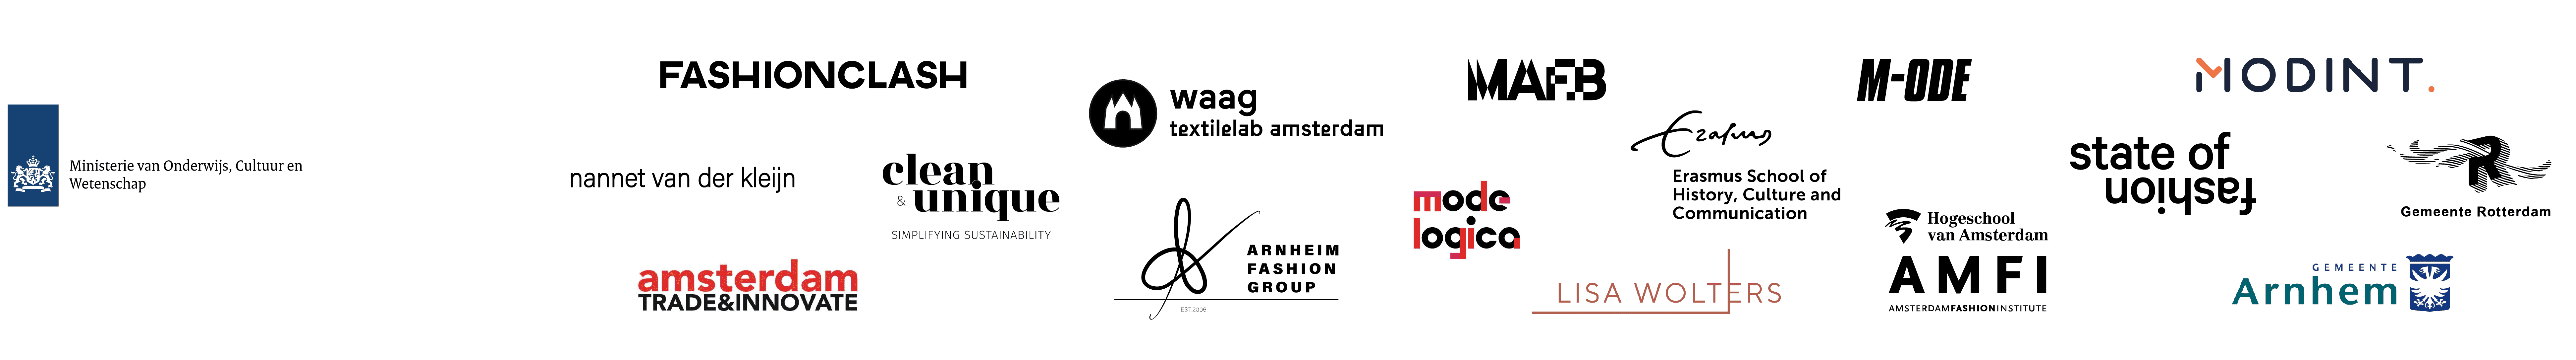 Organisation logos that started this project